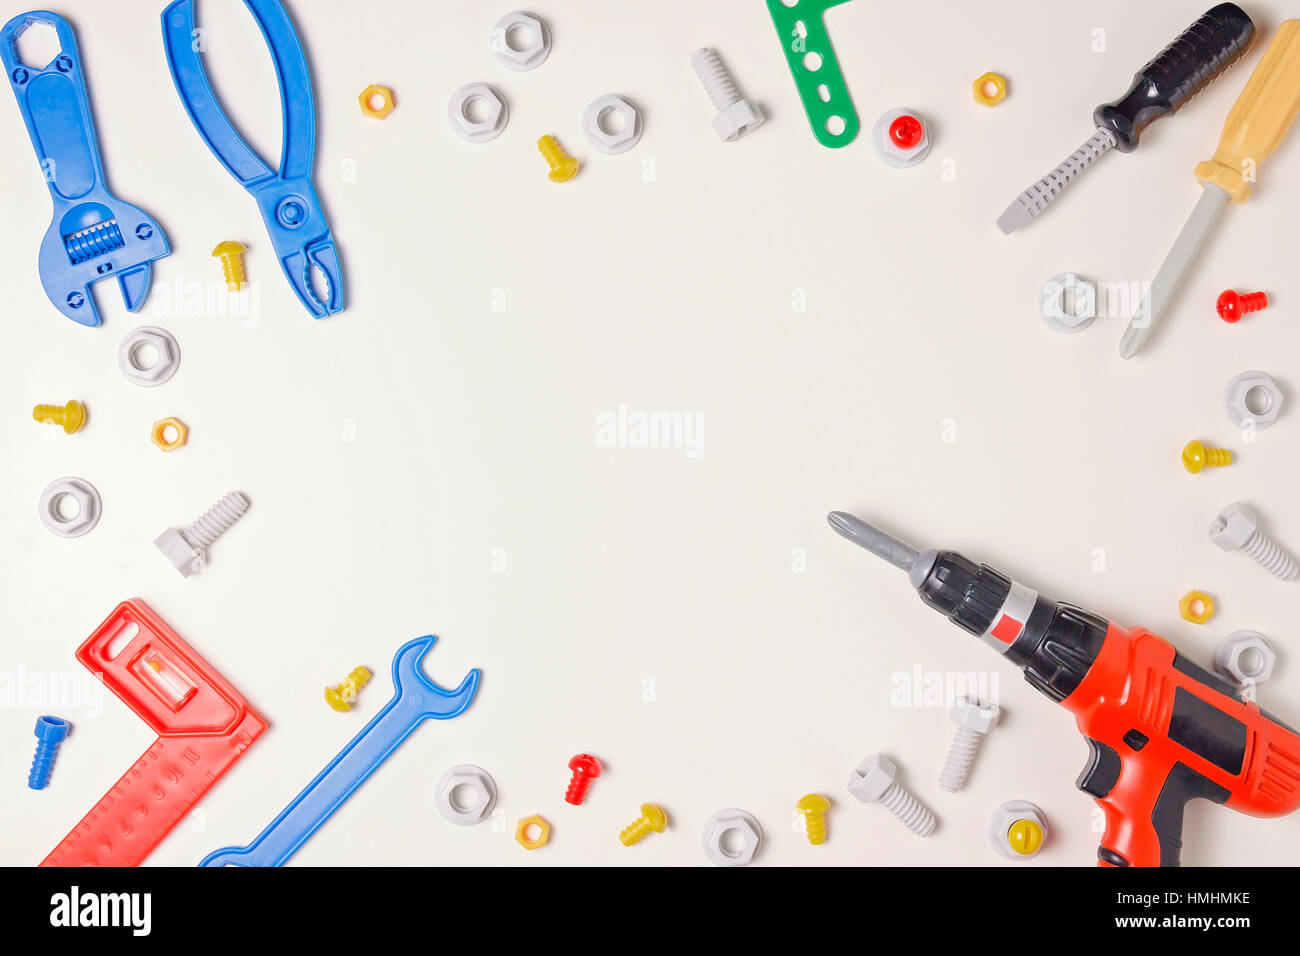 Toys construction tools from kids tool kit frame on white background. Top view. Flat lay. Copy space text - Stock Image